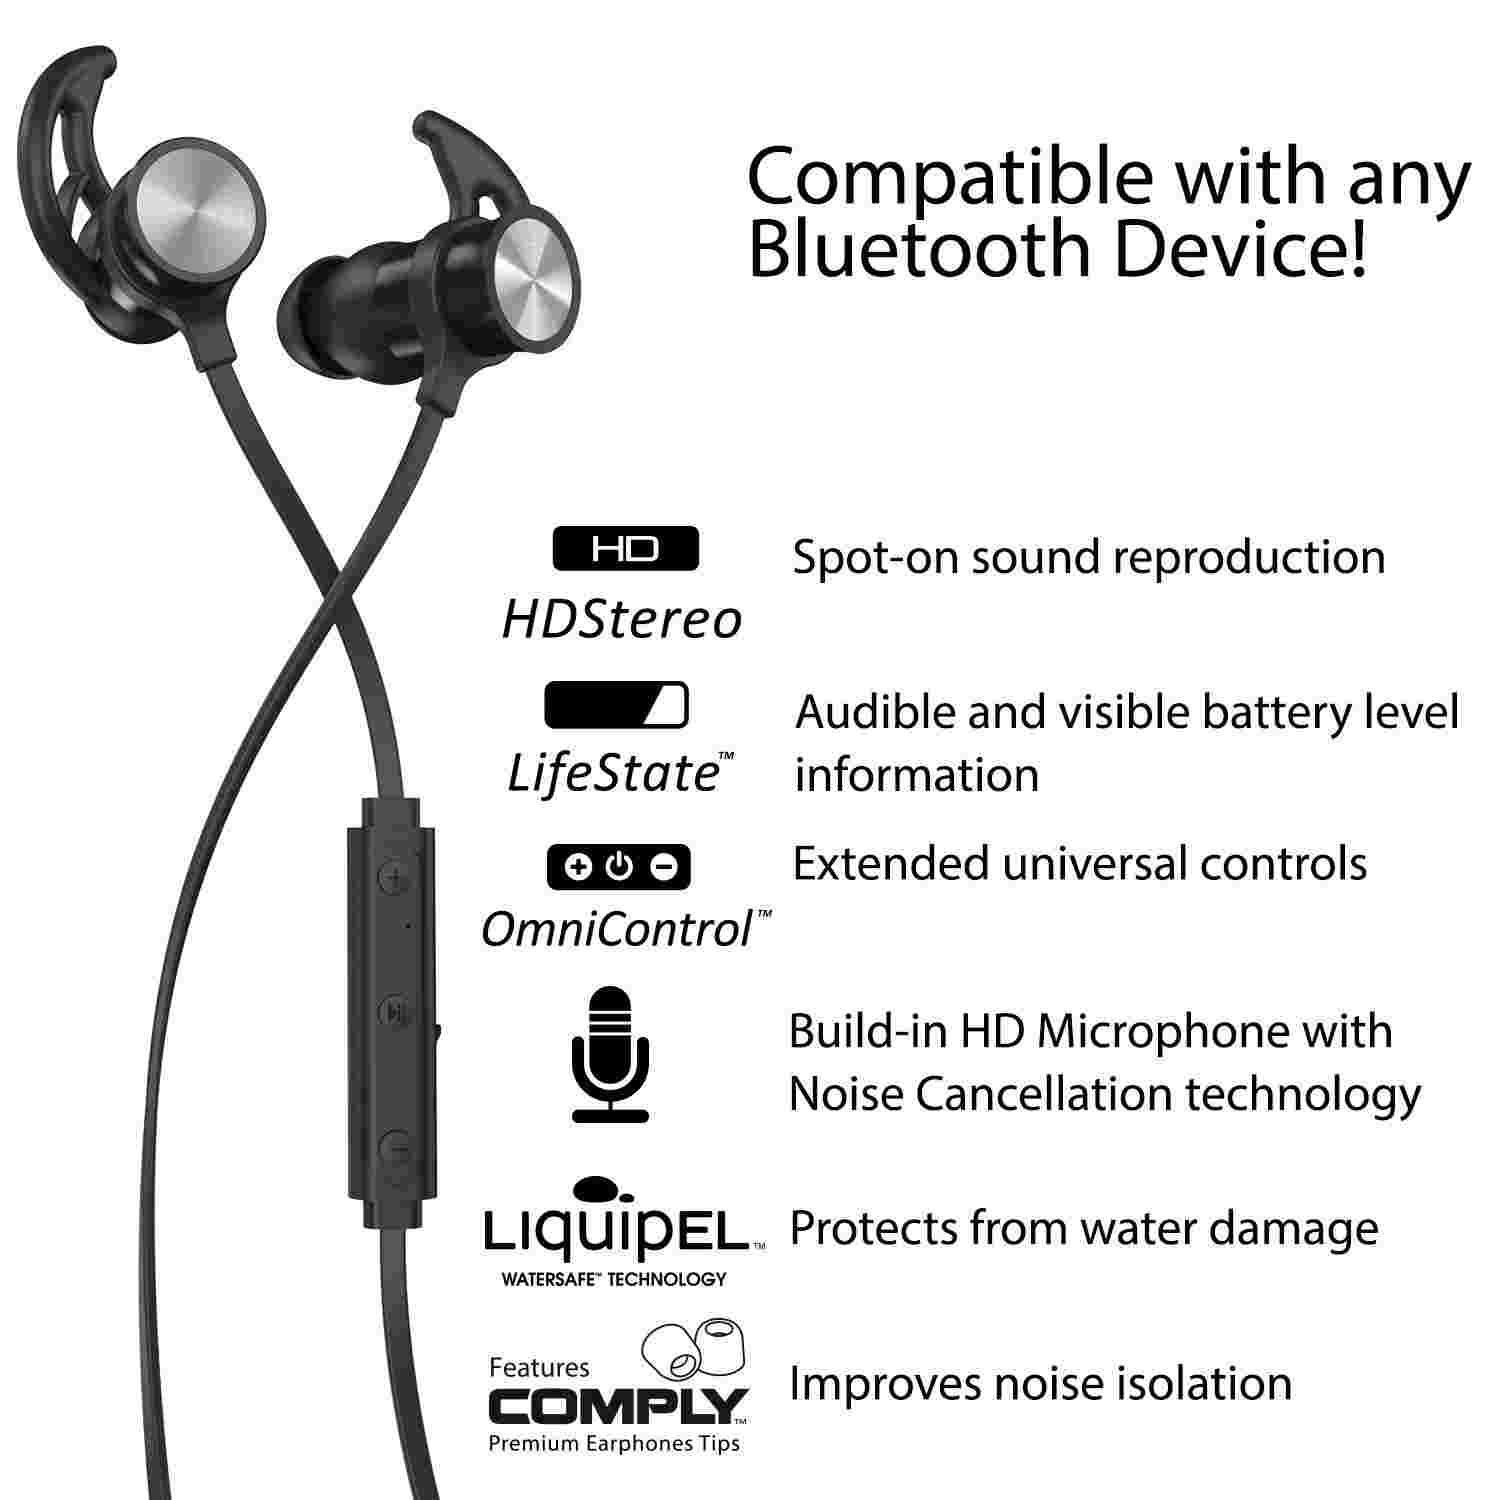 Phaiser BHS-730 Bluetooth Earbuds Review